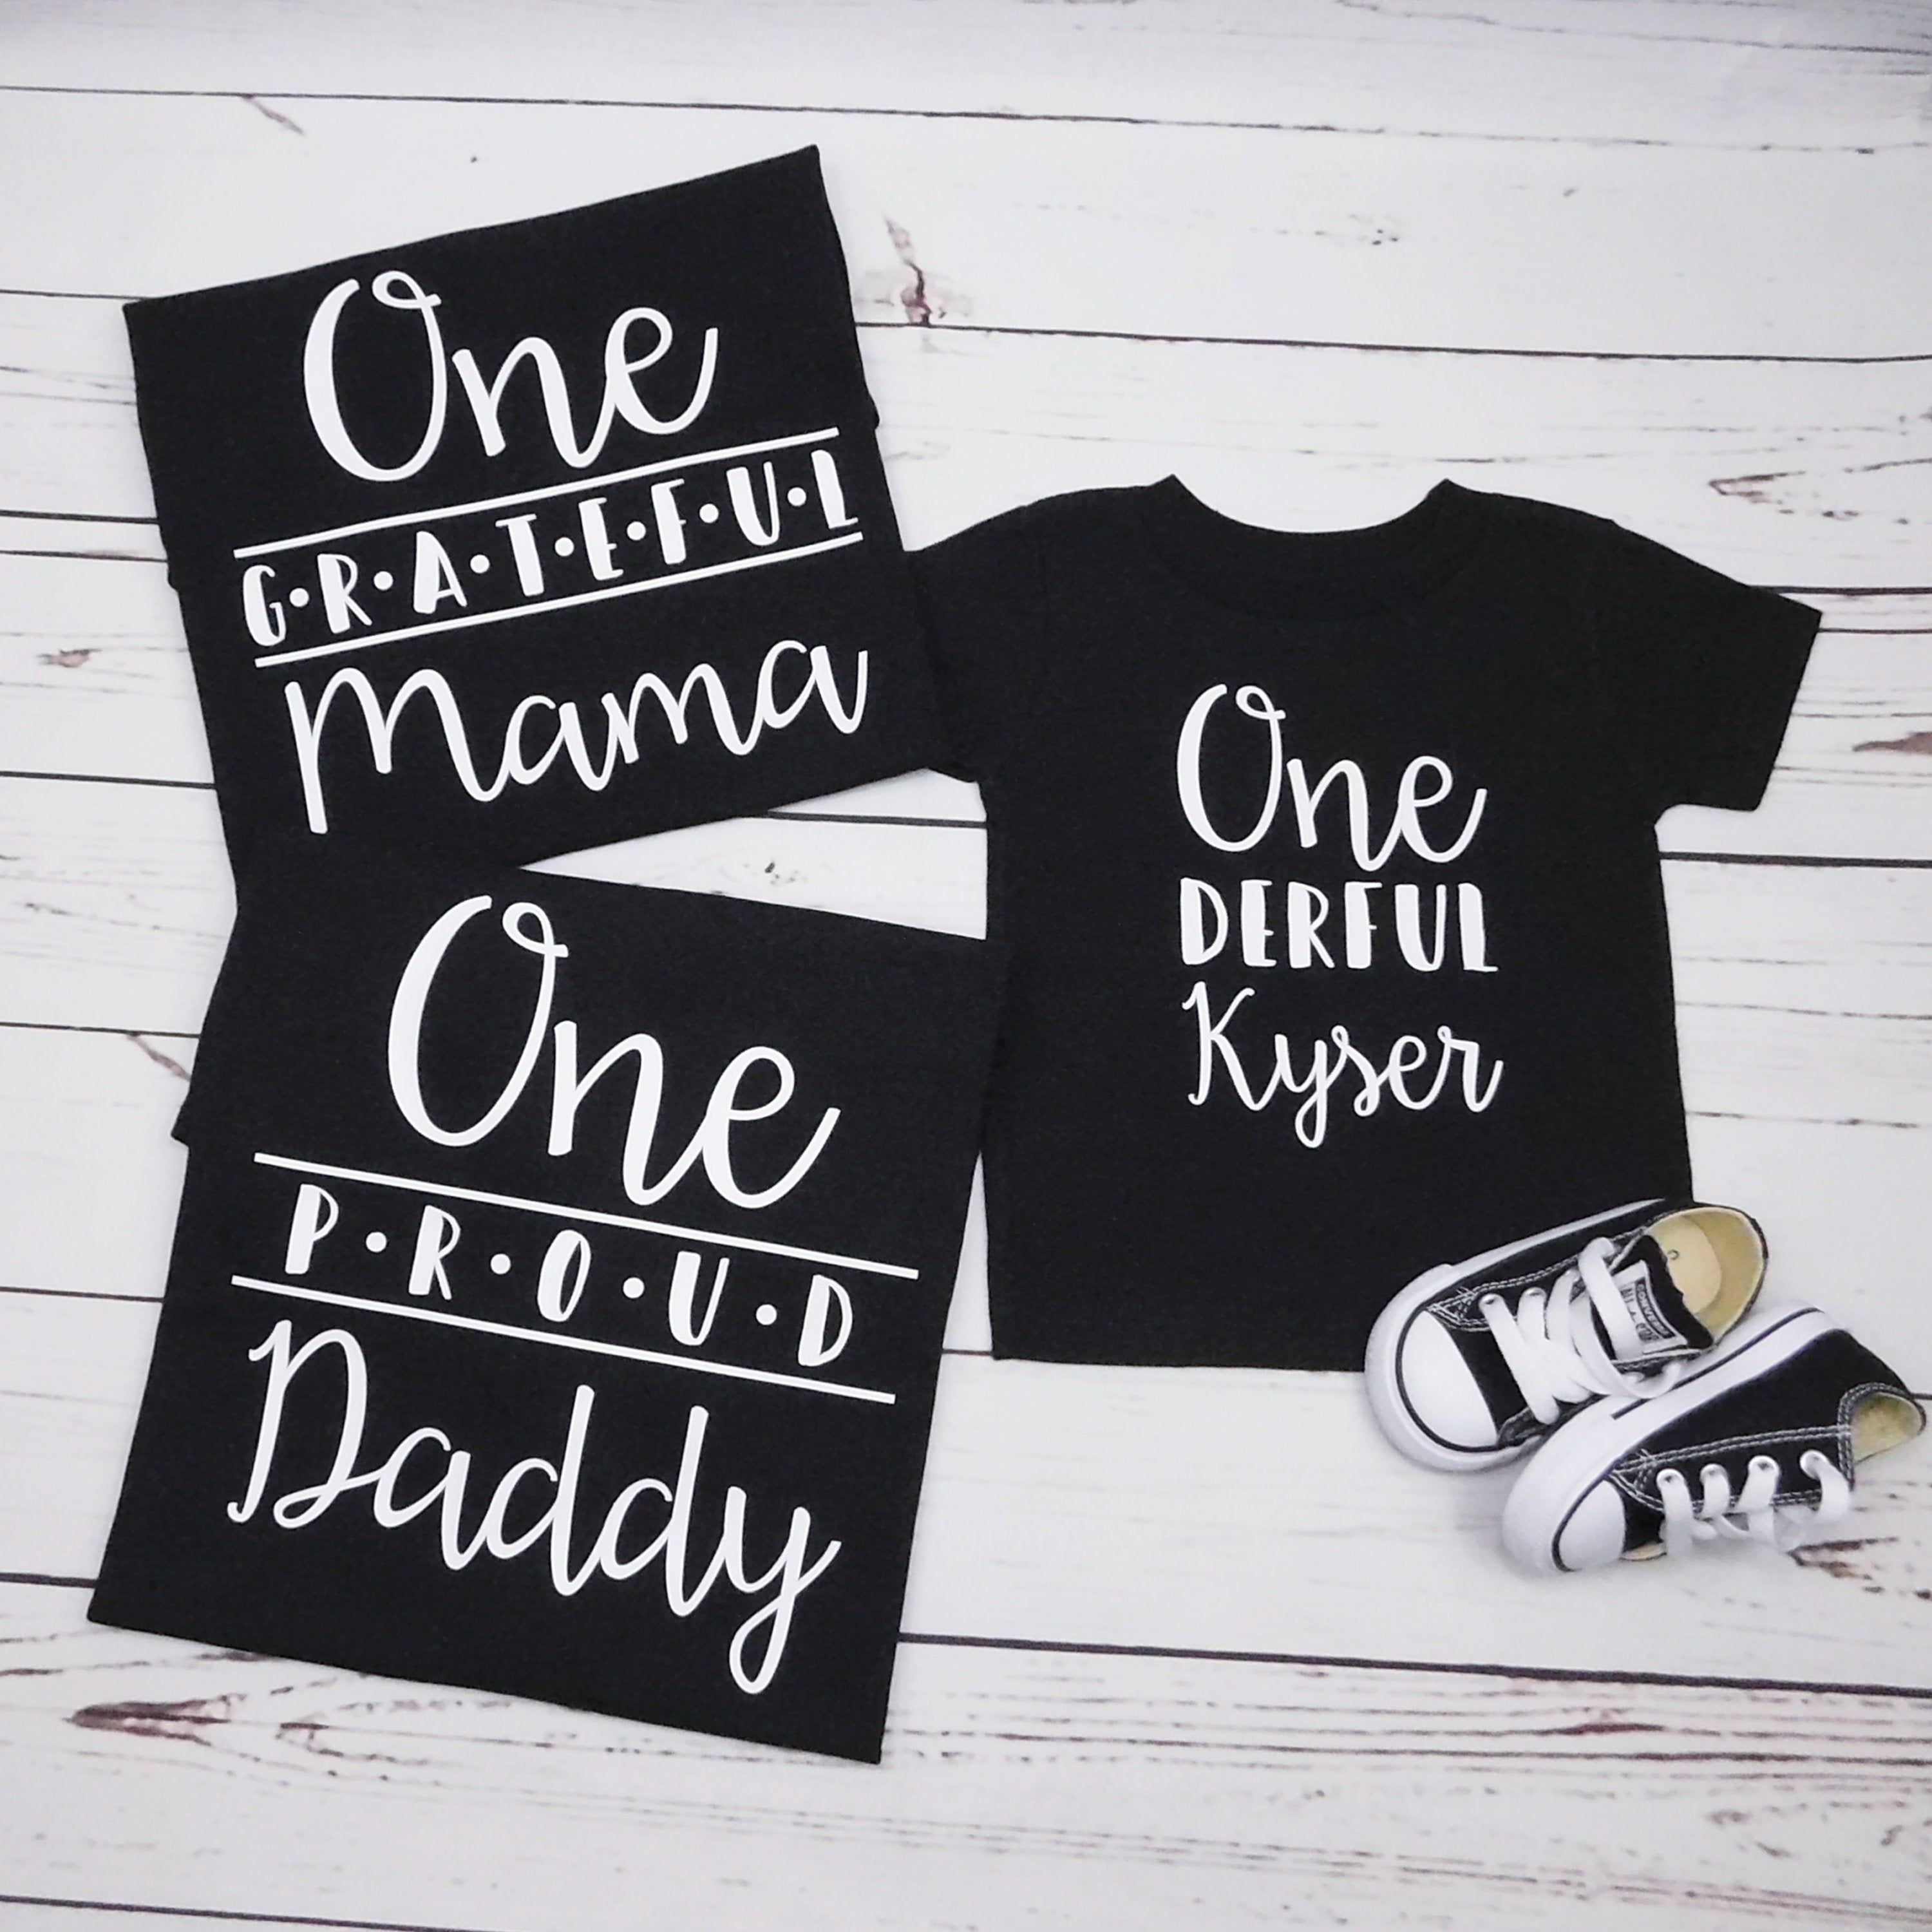 Family Shirts for Baby Boy 1st Birthday, Custom Matching Outfits for Mom, Dad, Sister, Brother, T Shirts